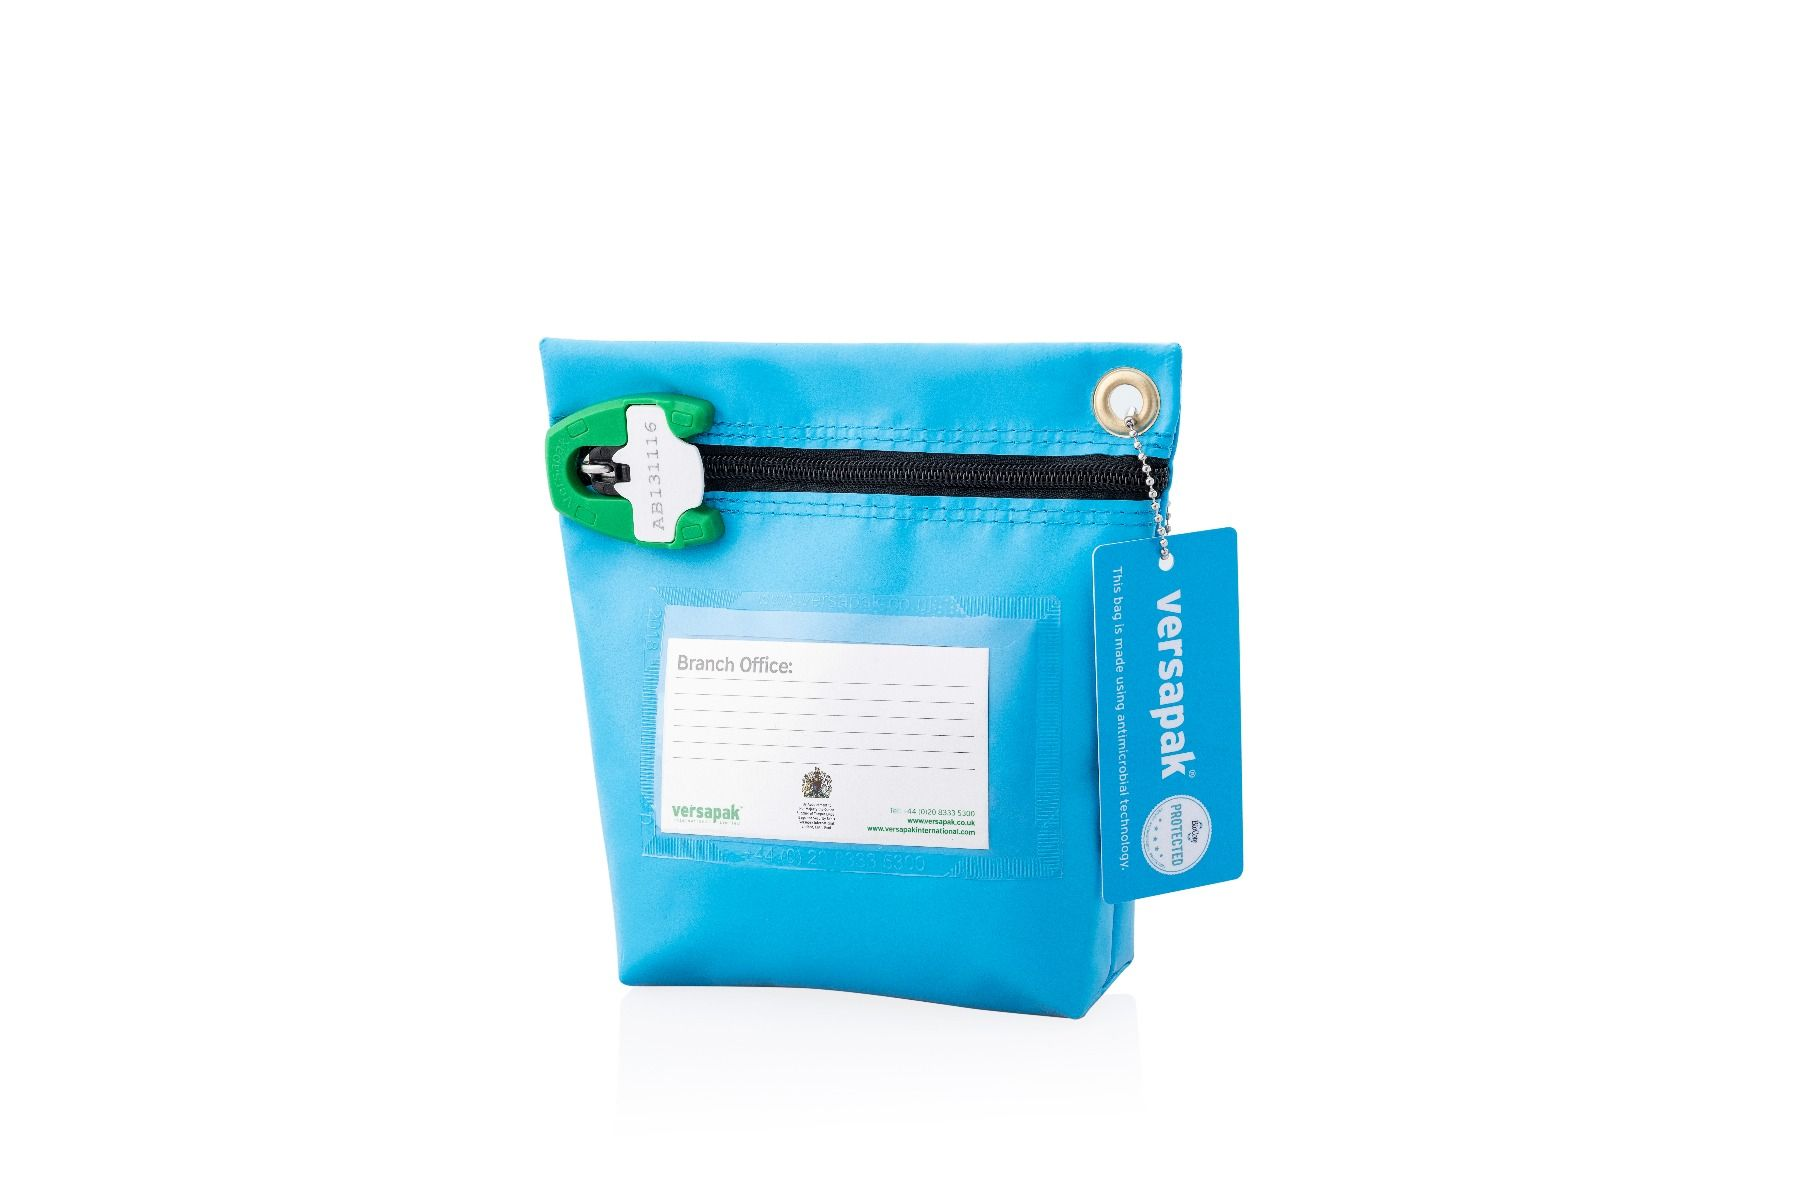 Small Secure Cash Bag - Antimicrobial Protection